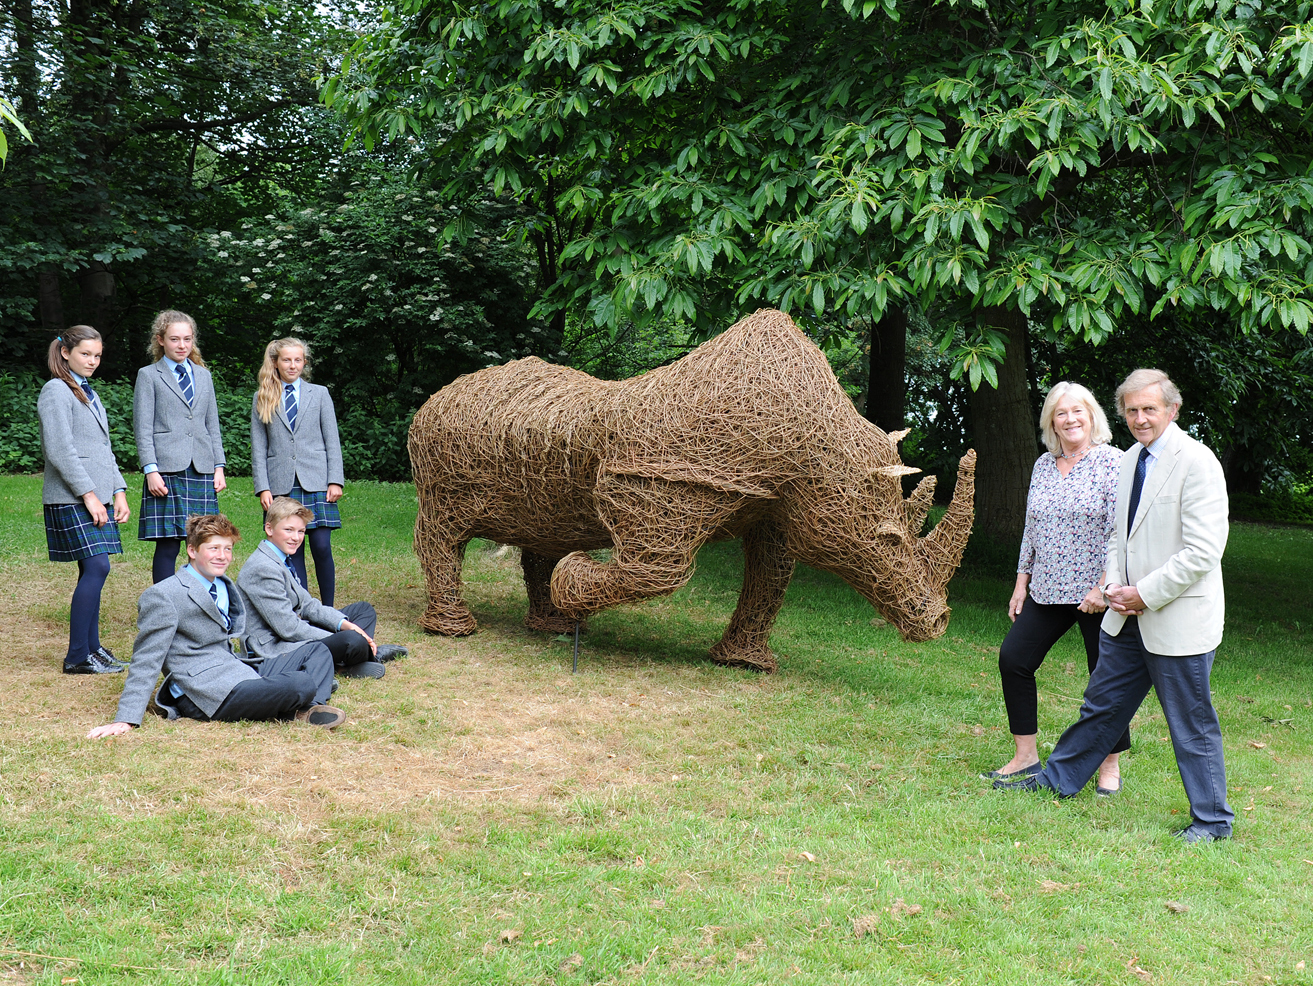 Retiring Abberley Hall School headmaster John Walker and wife Janie with some of the final year pupils who helped to create a wicker Rhino statue as part of this leaving present.